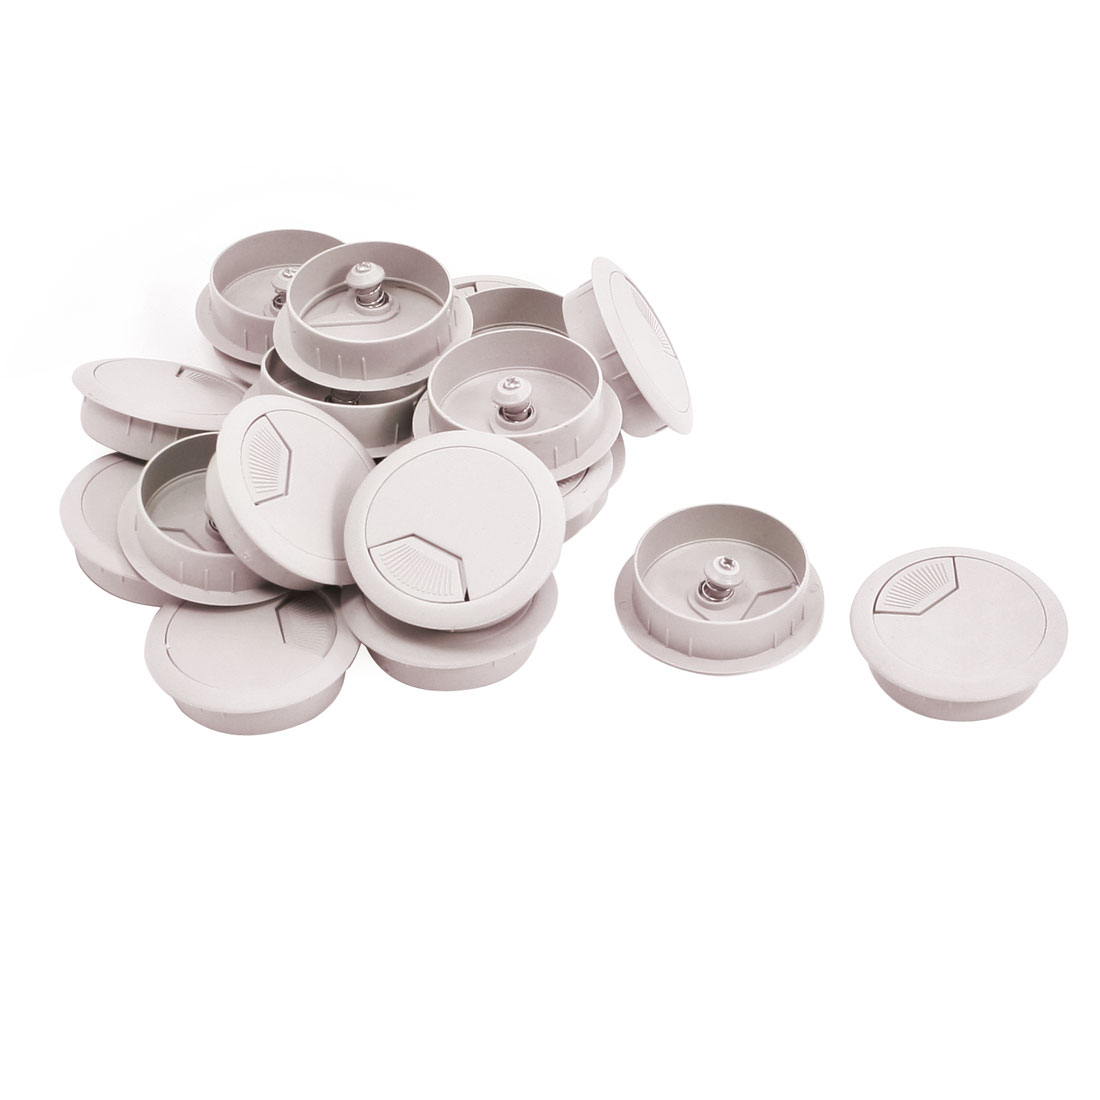 PC Desk Plastic Light Gray 50mm Diameter Grommet Cable Hole Cover 20Pcs